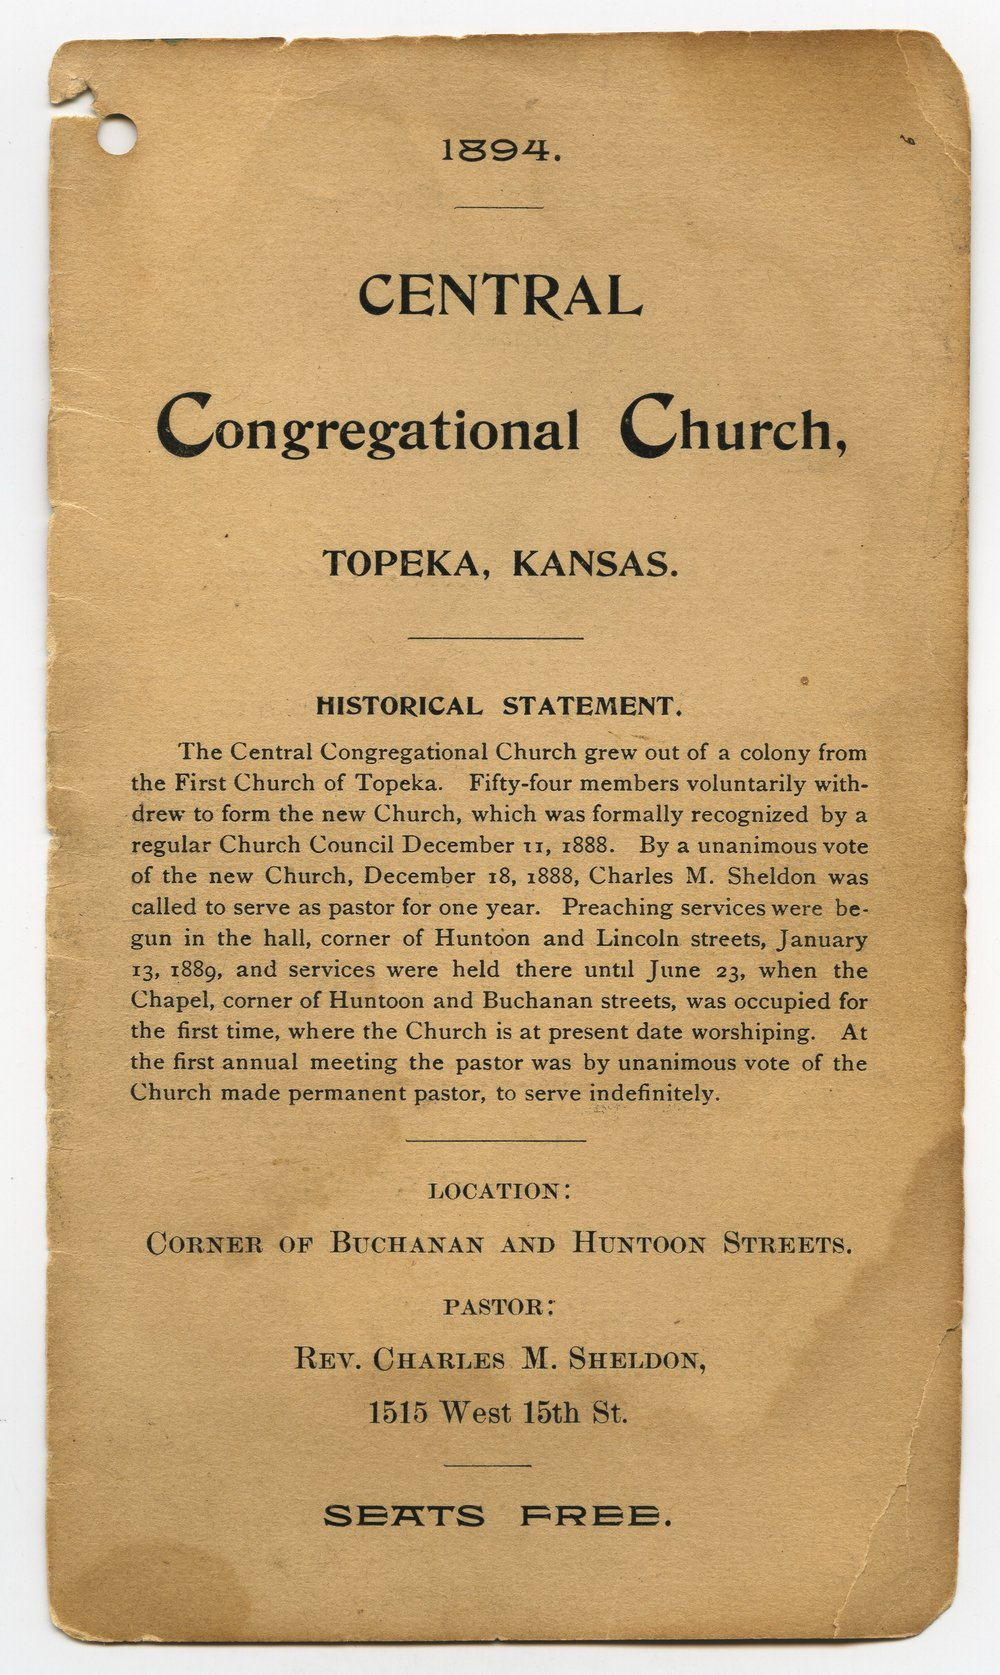 Central Congregational Church directory of members - 1 [1894 Directory]